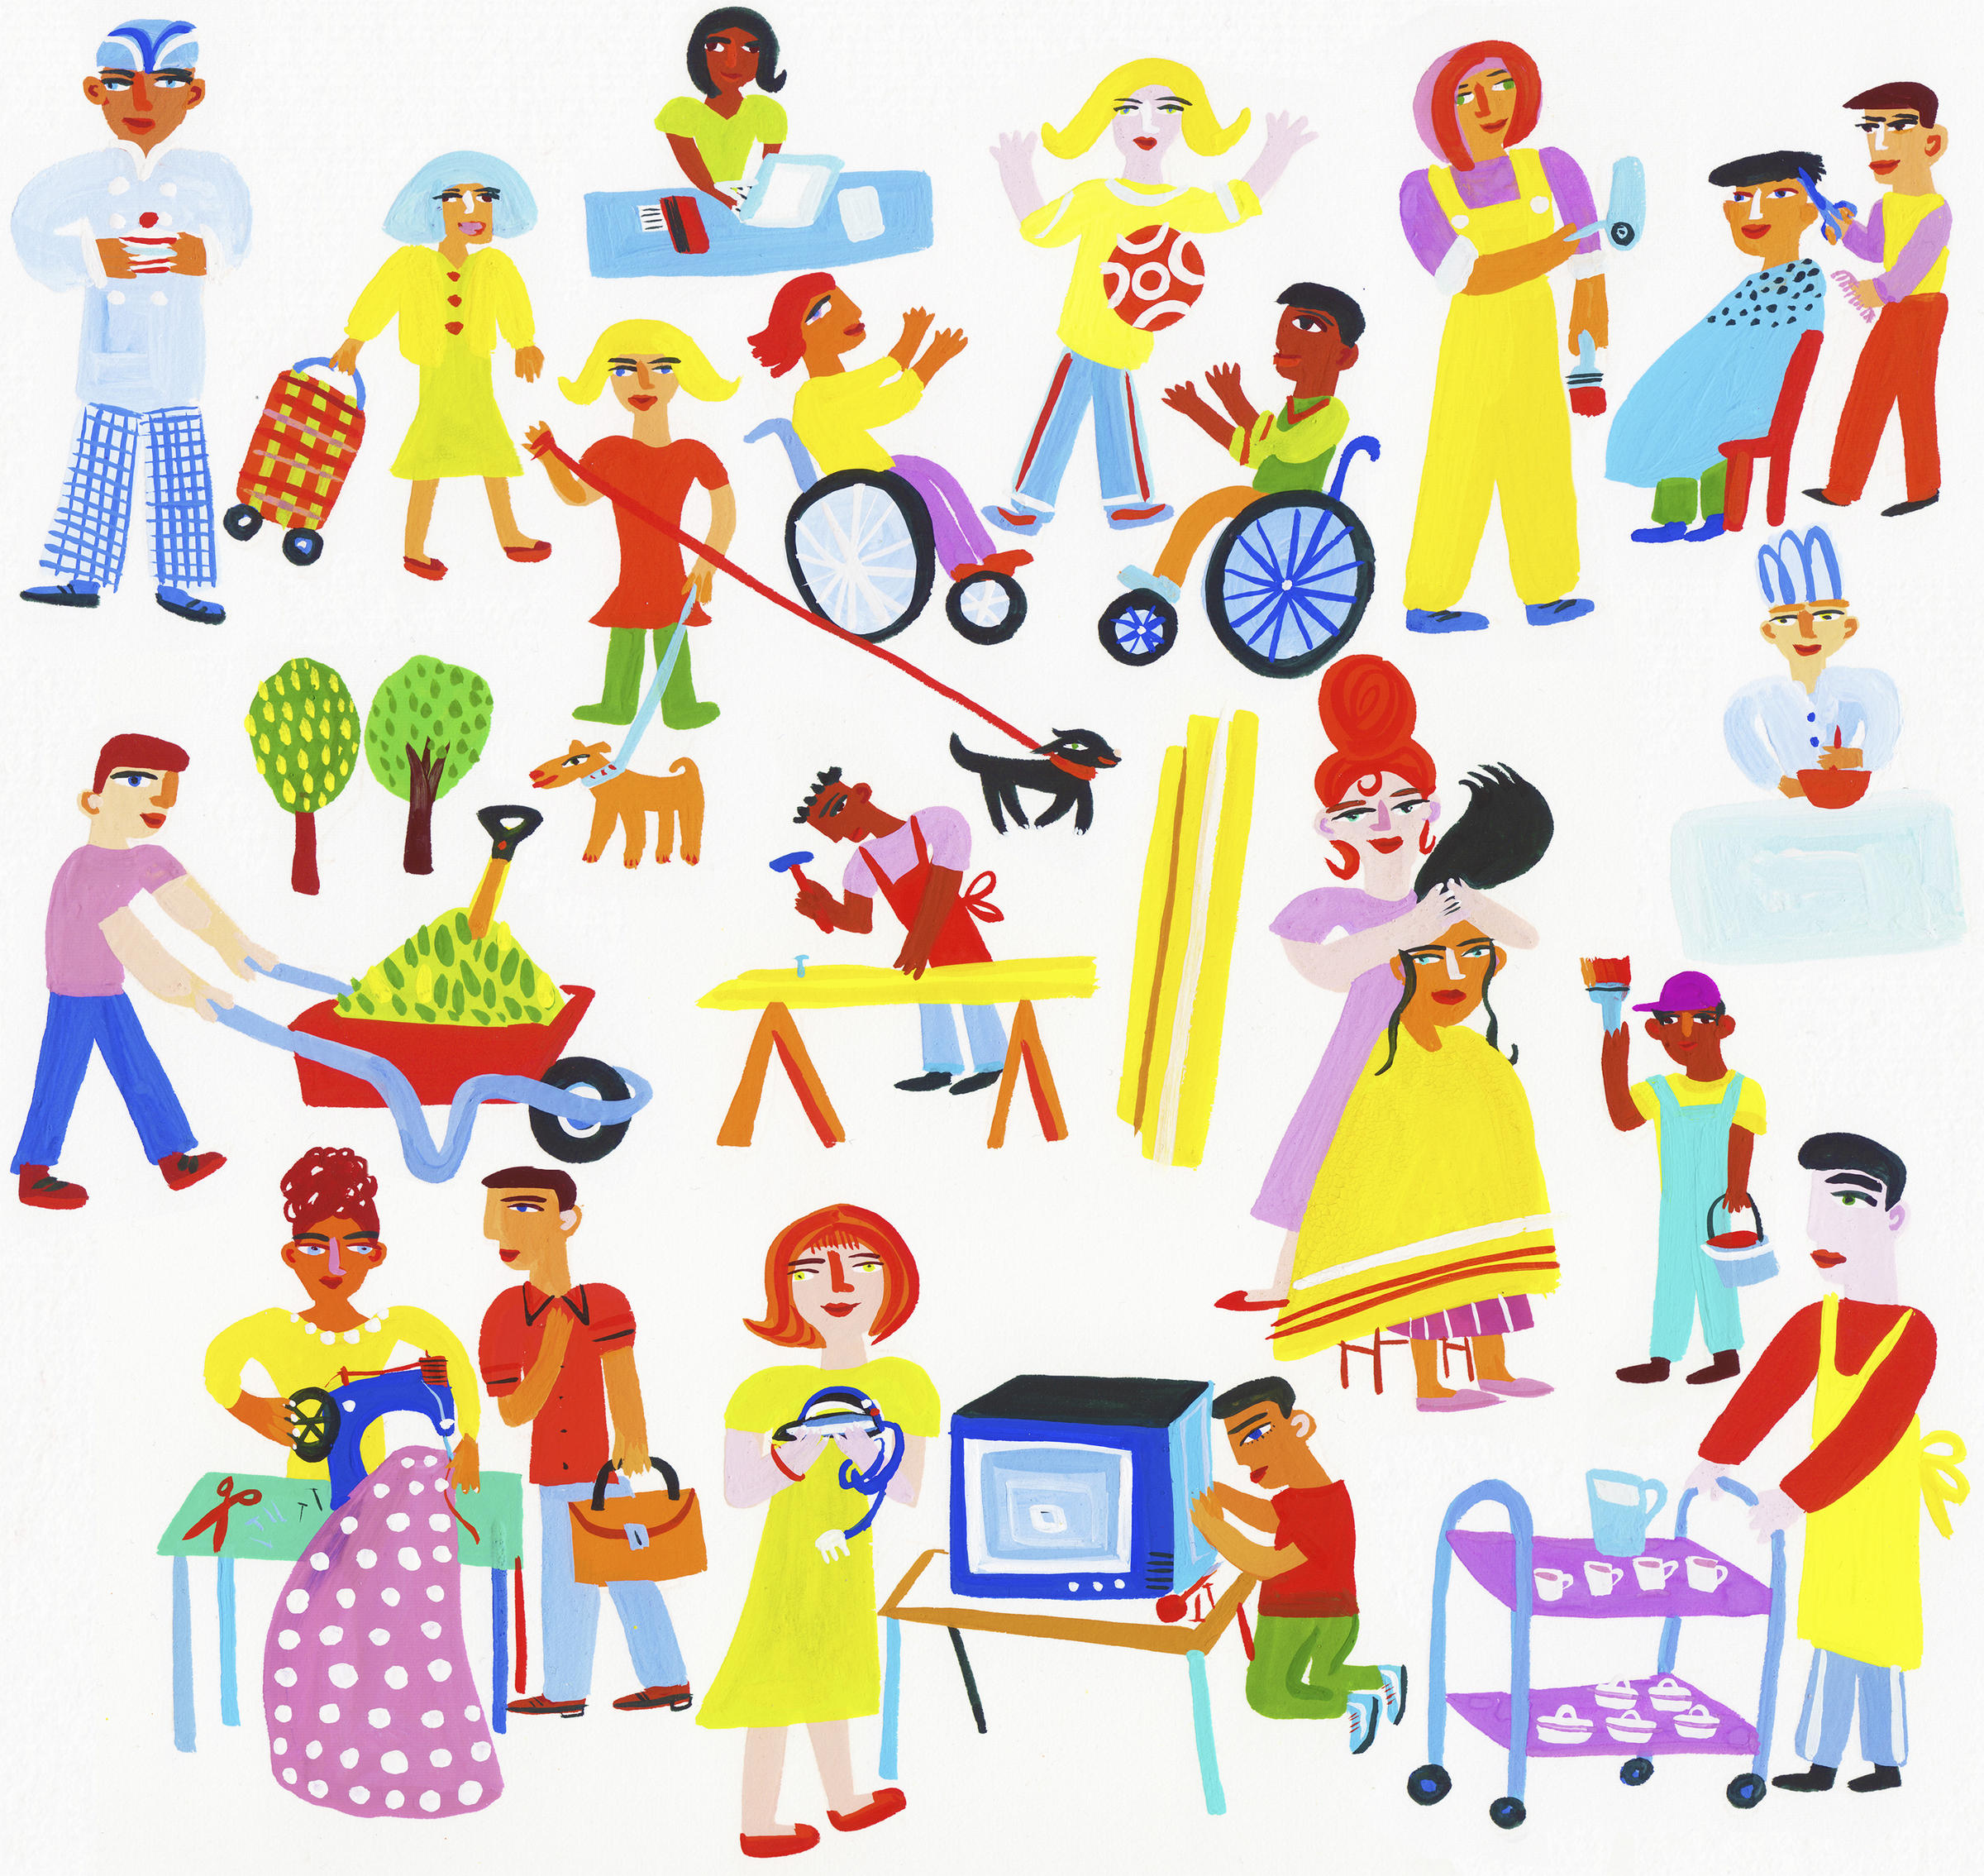 attention educ 1300 students update 3 Attention ideaedgov will the individuals with disabilities education act (ages 3-21) receive special education and related services under idea part b.